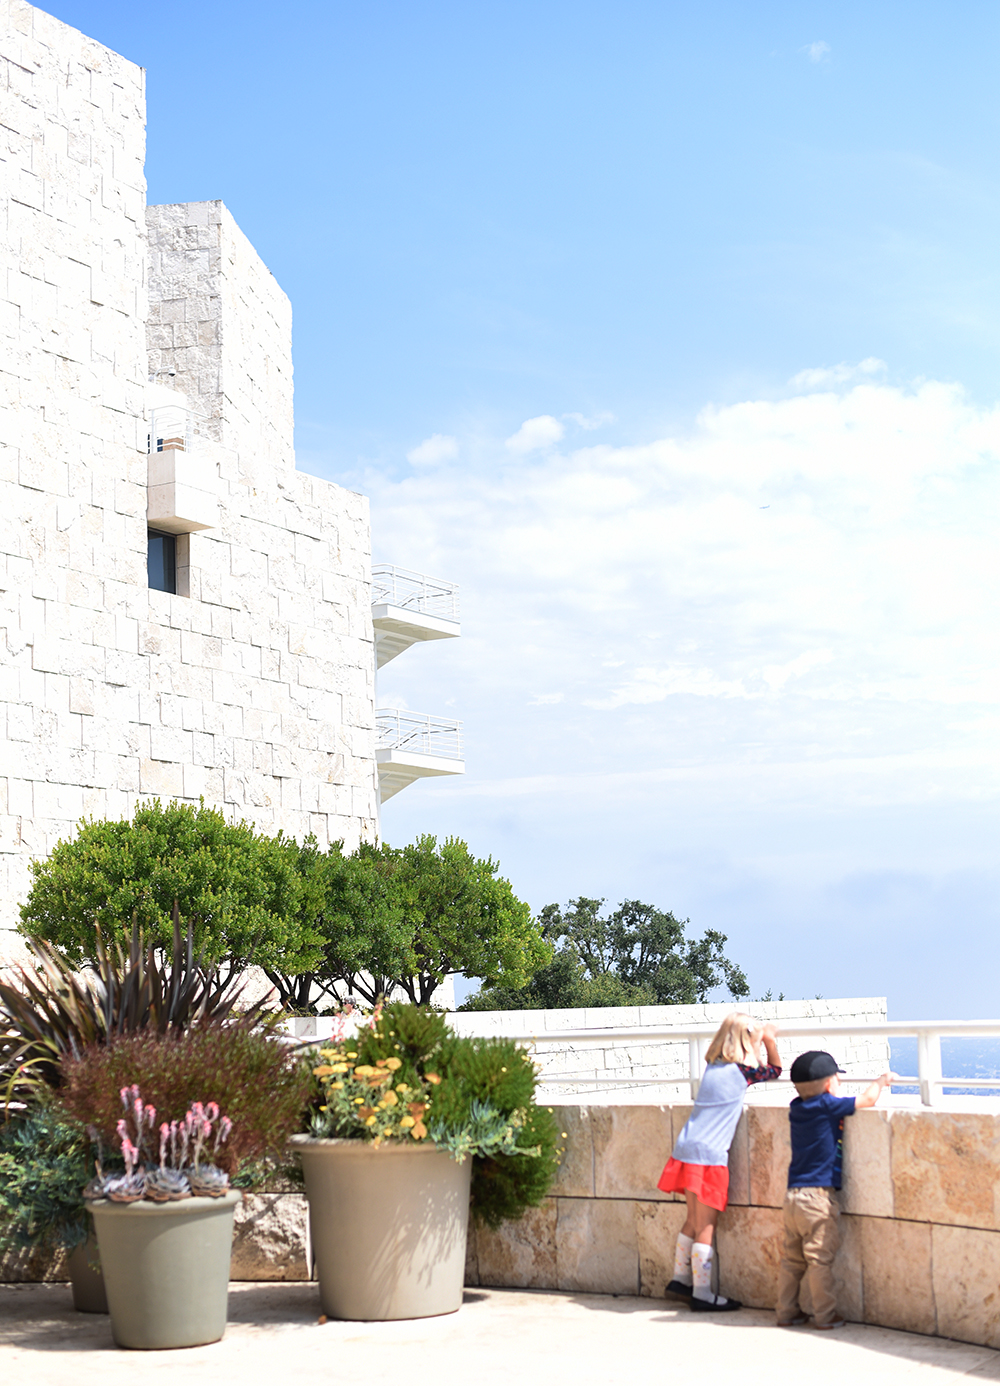 some highlights from our family trip to Los Angeles: the Getty Center